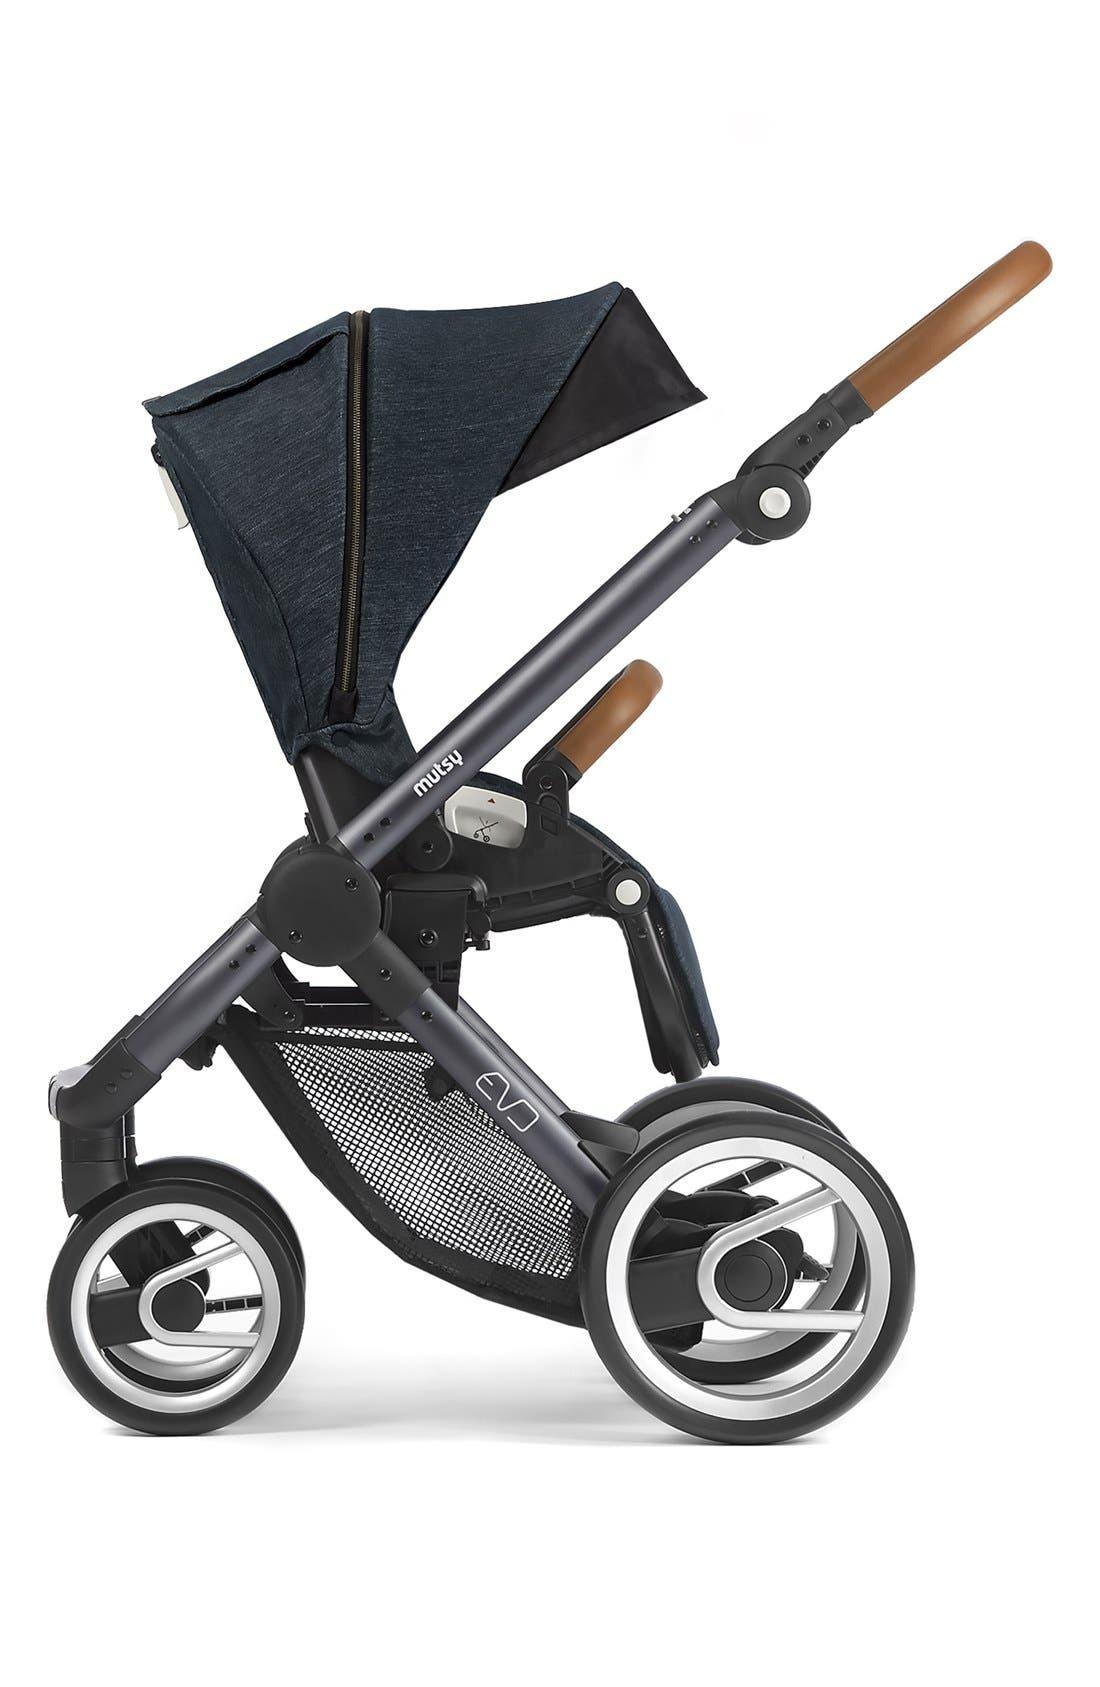 Evo - Farmer Earth Stroller,                             Alternate thumbnail 3, color,                             212